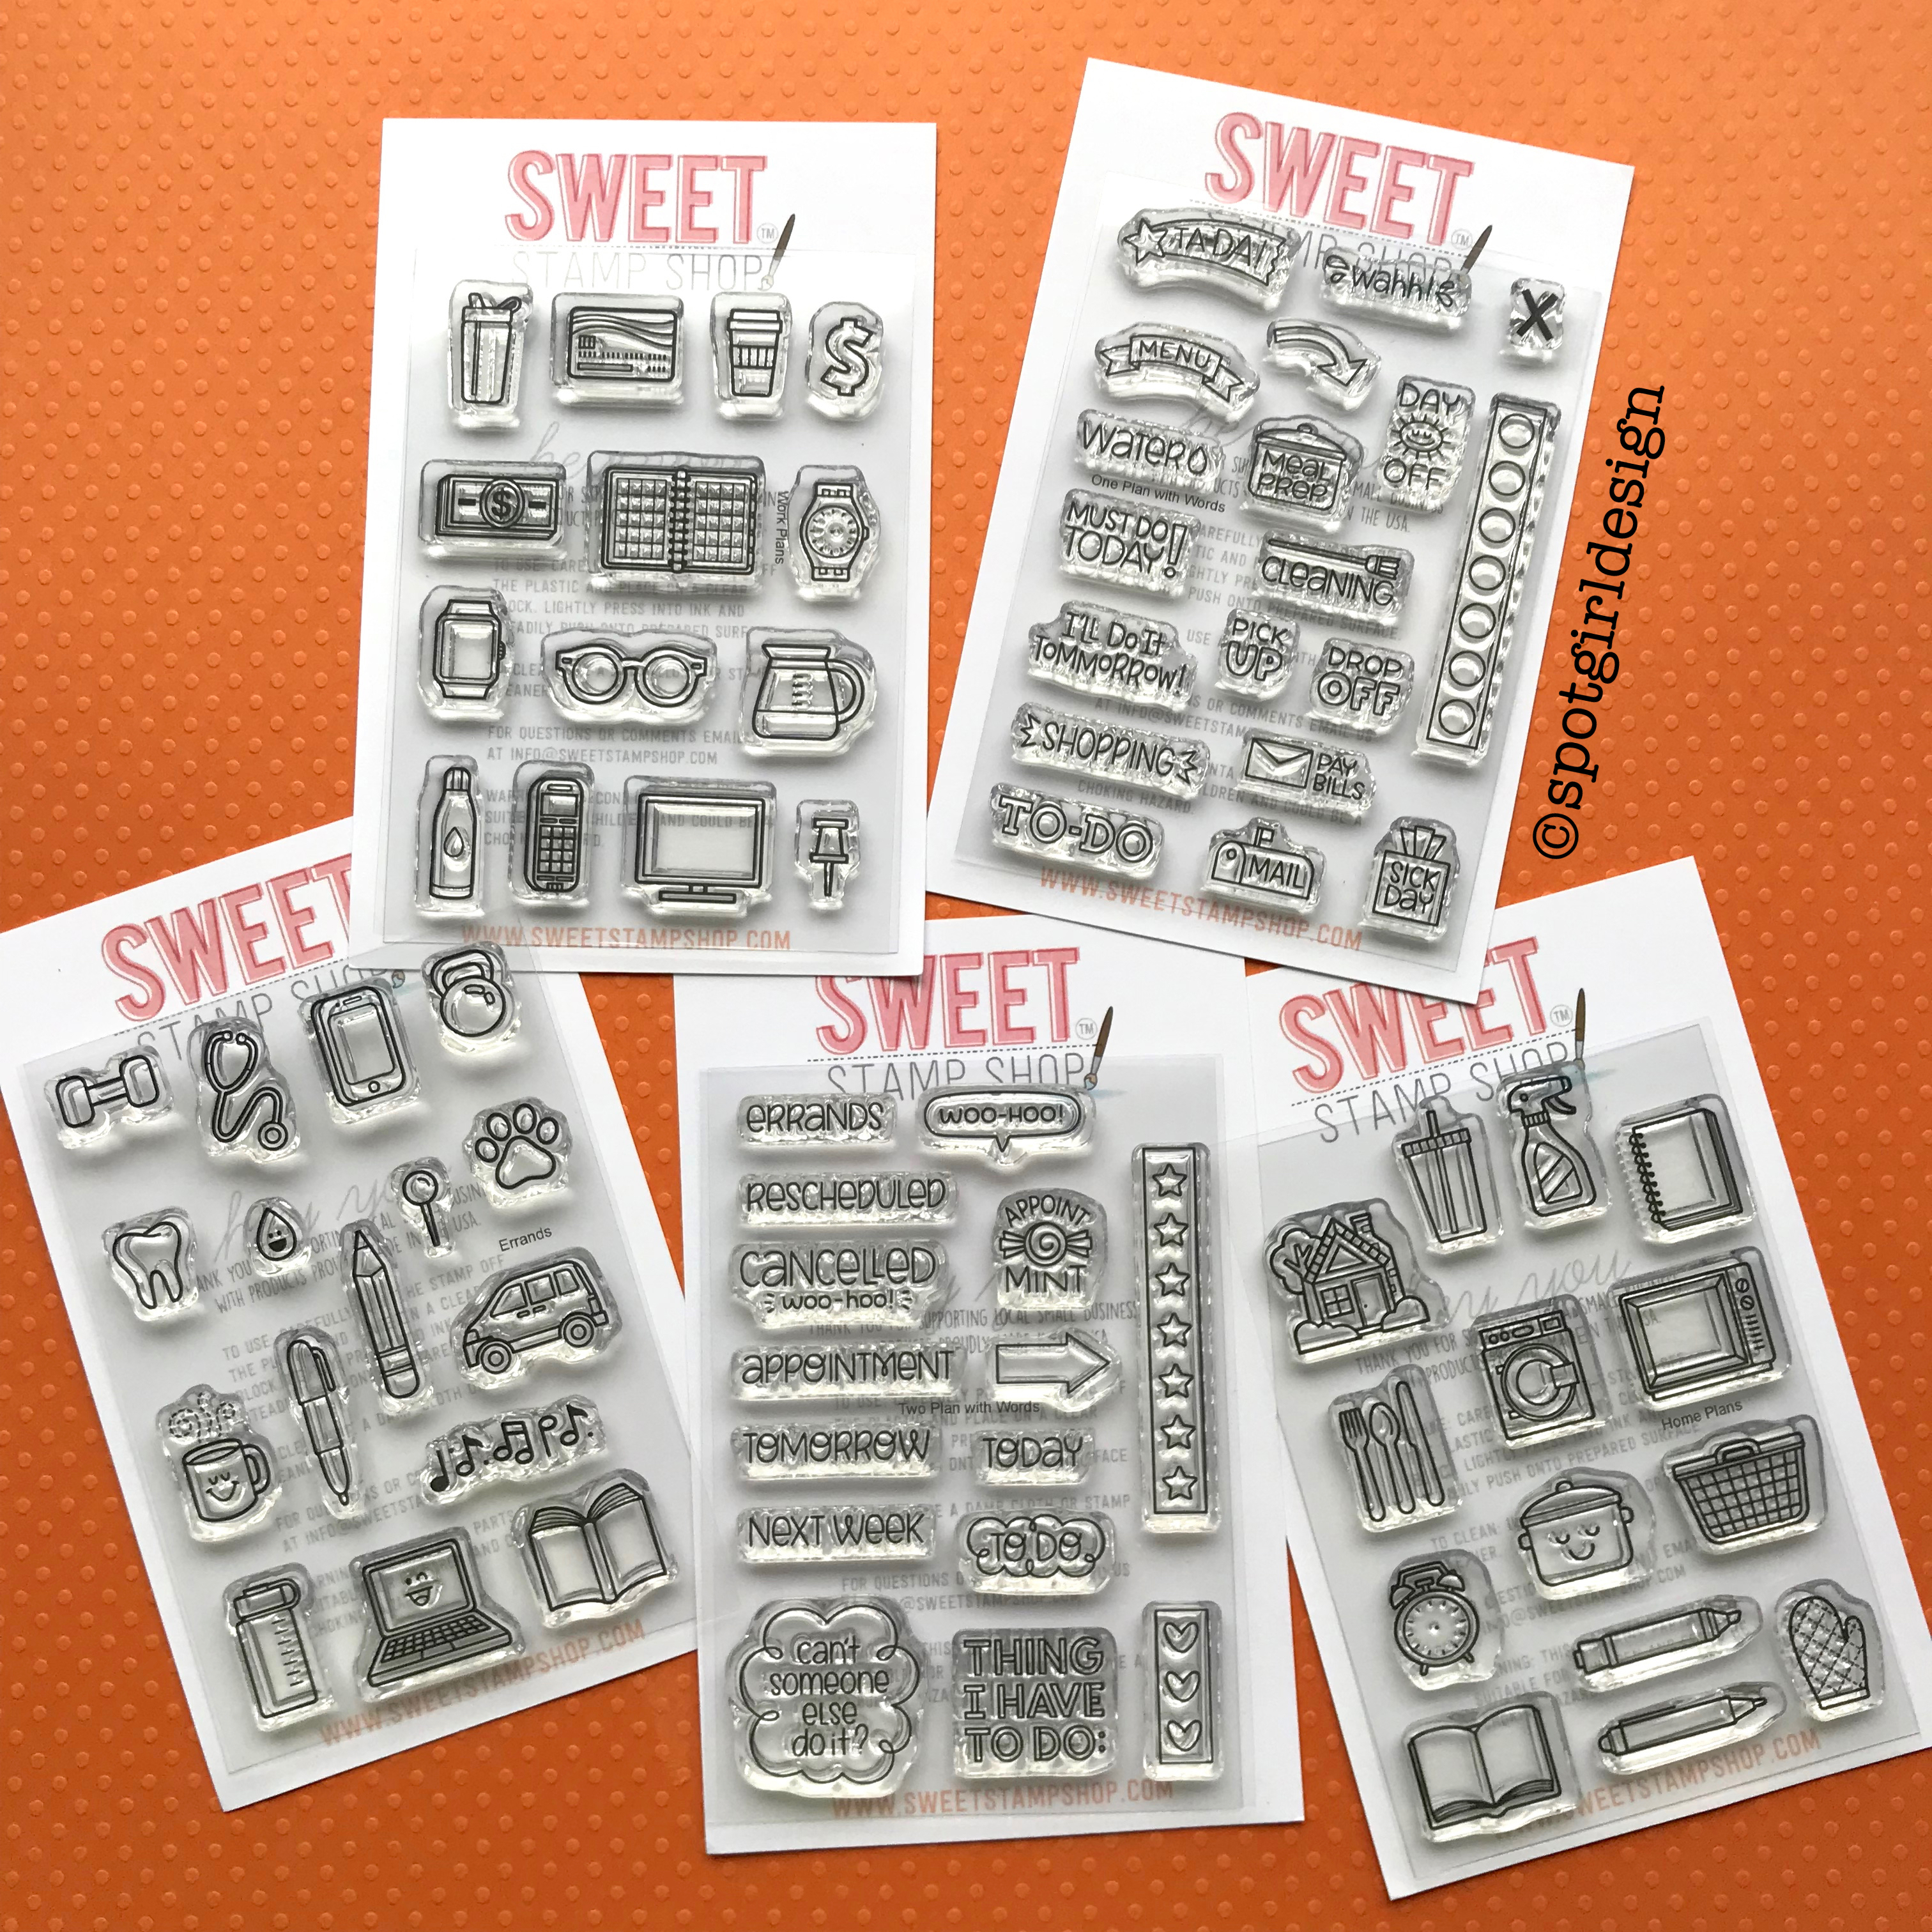 Sweet Stamp Shop 4